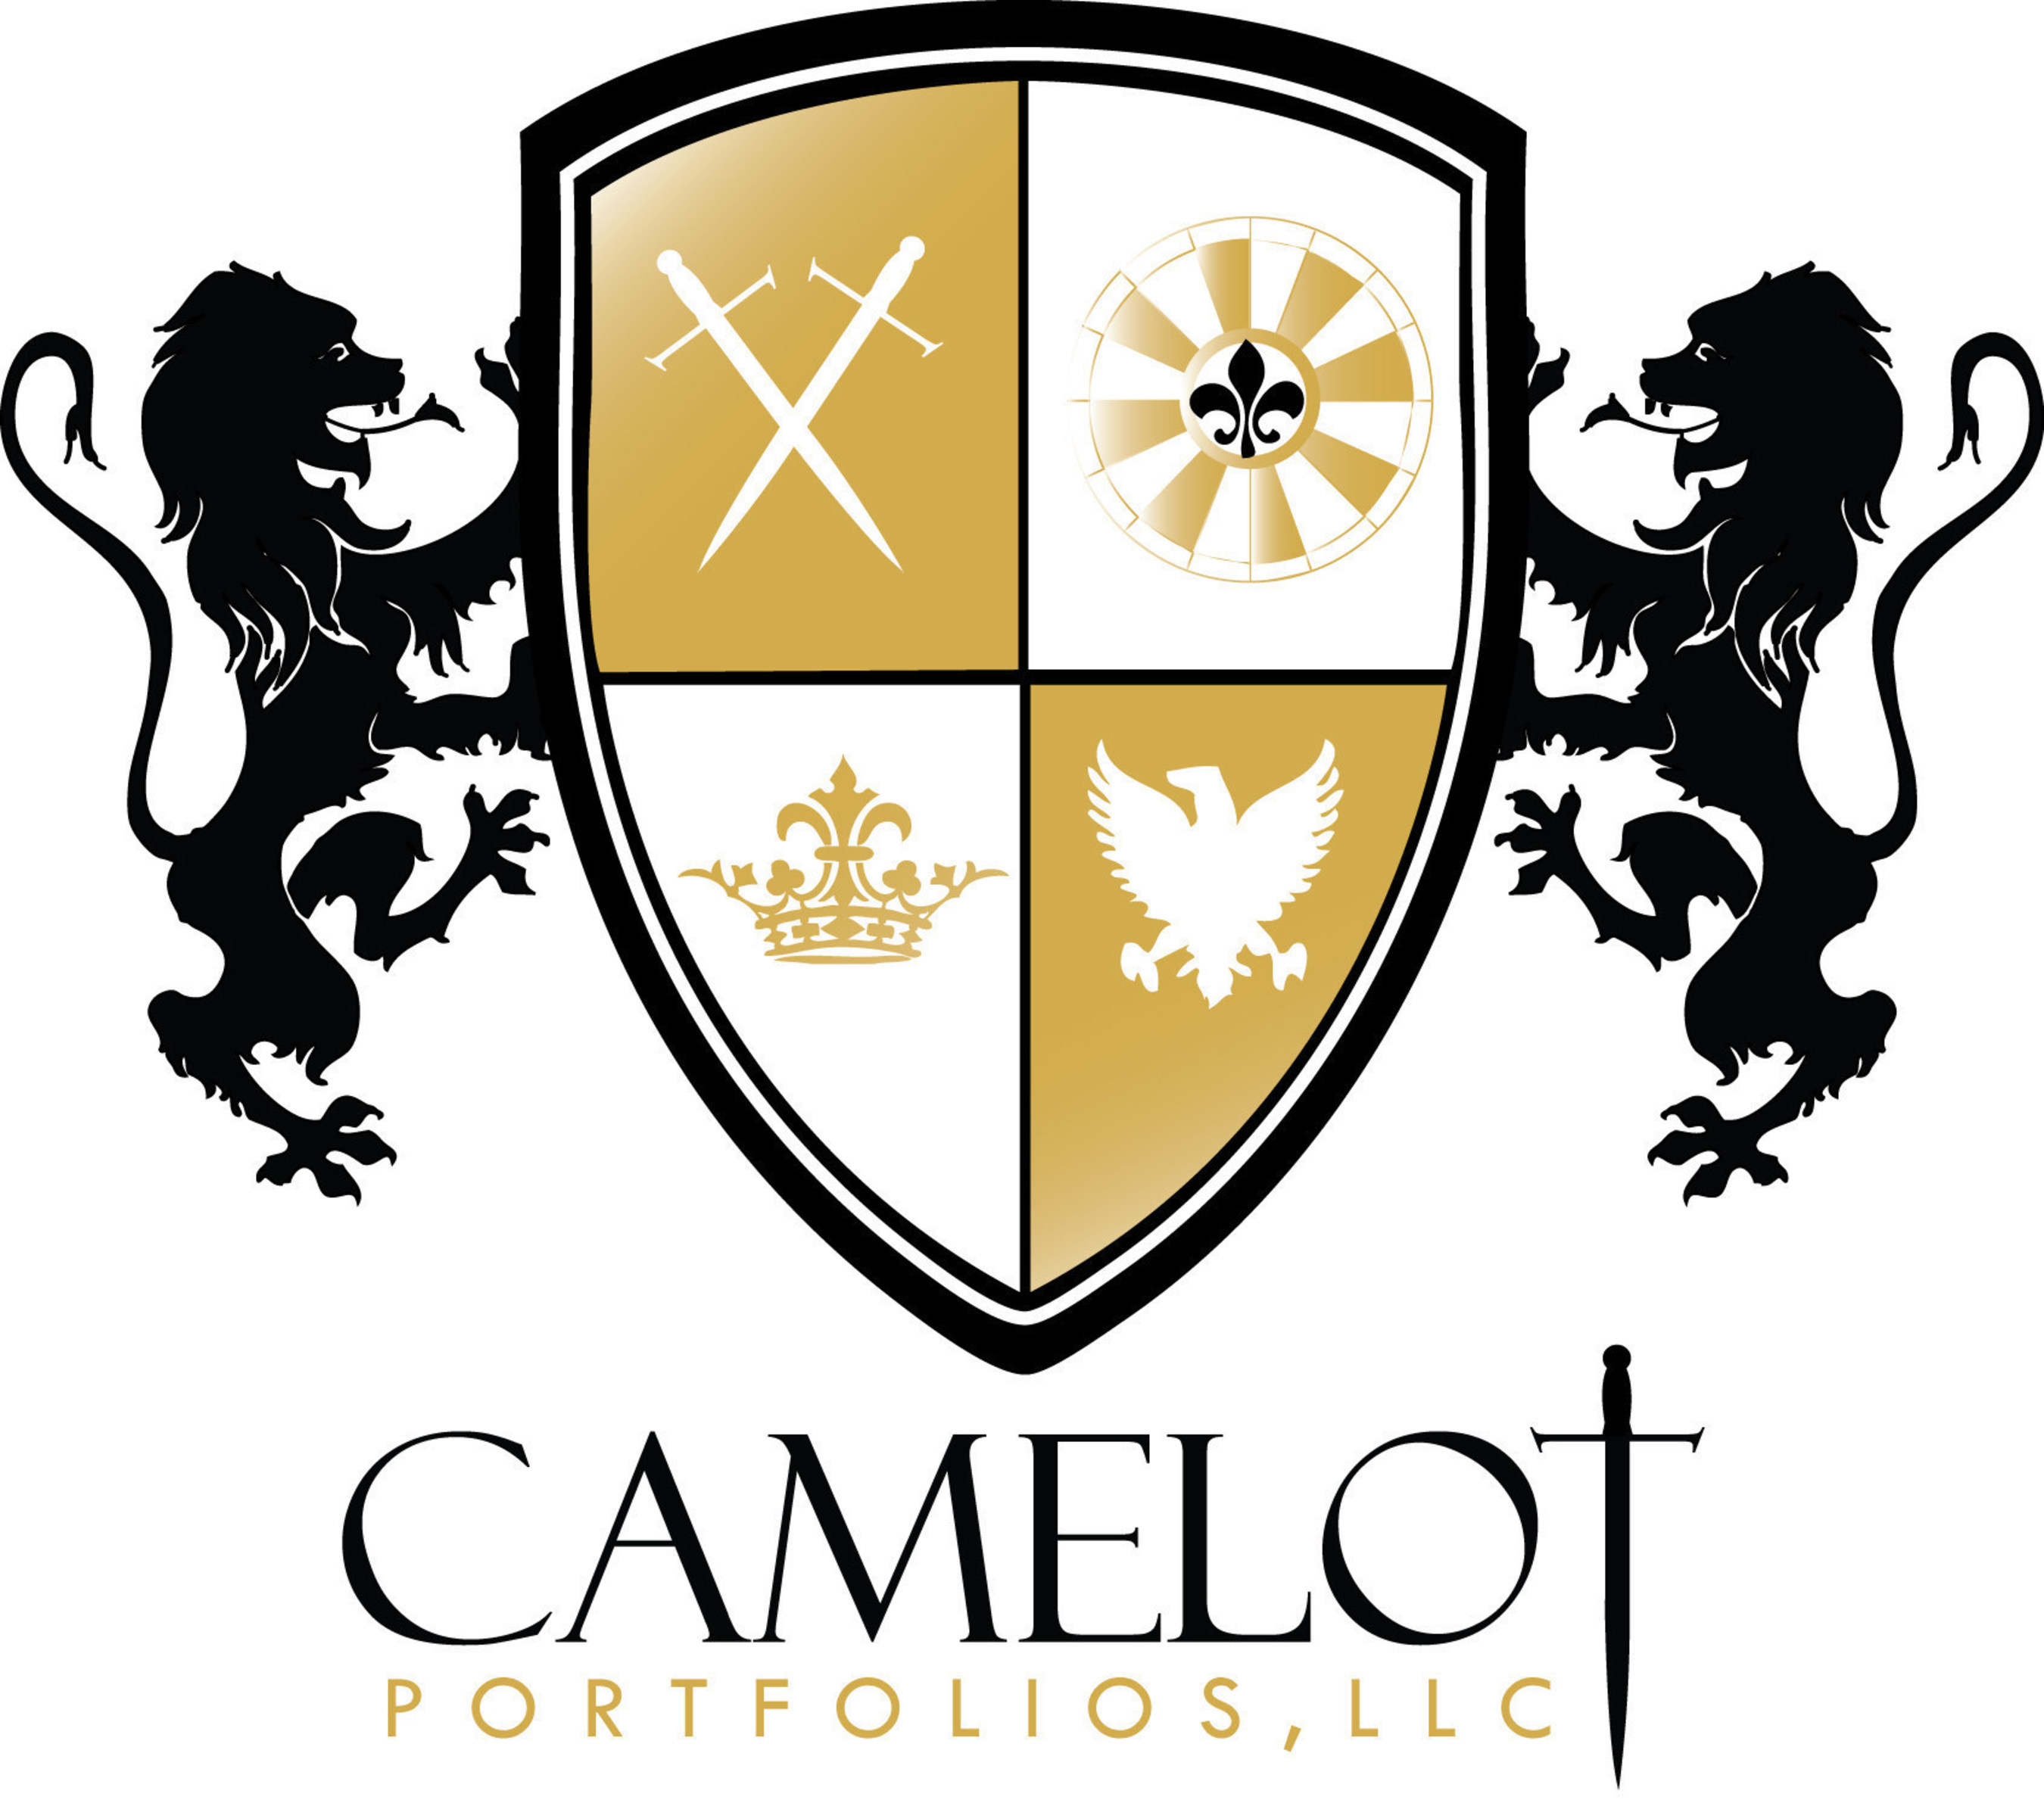 Camelot Portfolios Offers Complimentary Transition Consulting To Curian Advisors